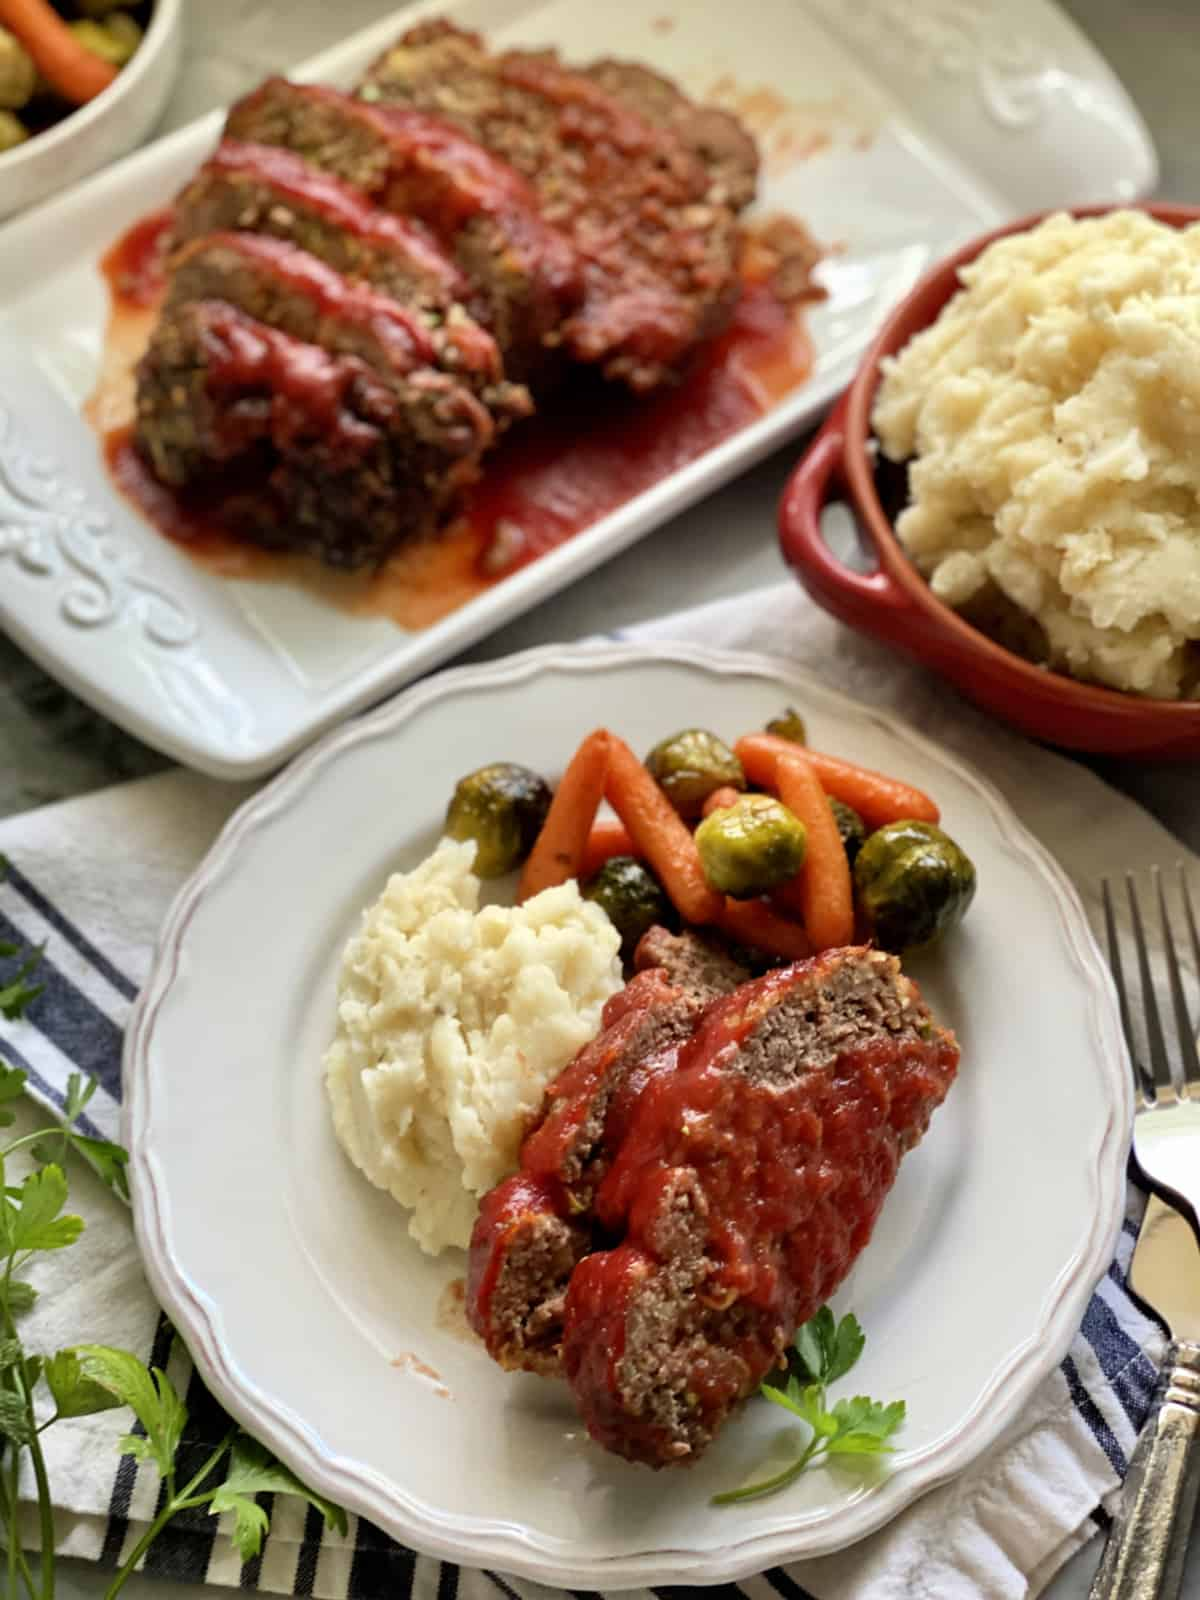 Top view of a plate of meatloaf with mashed potatoes.